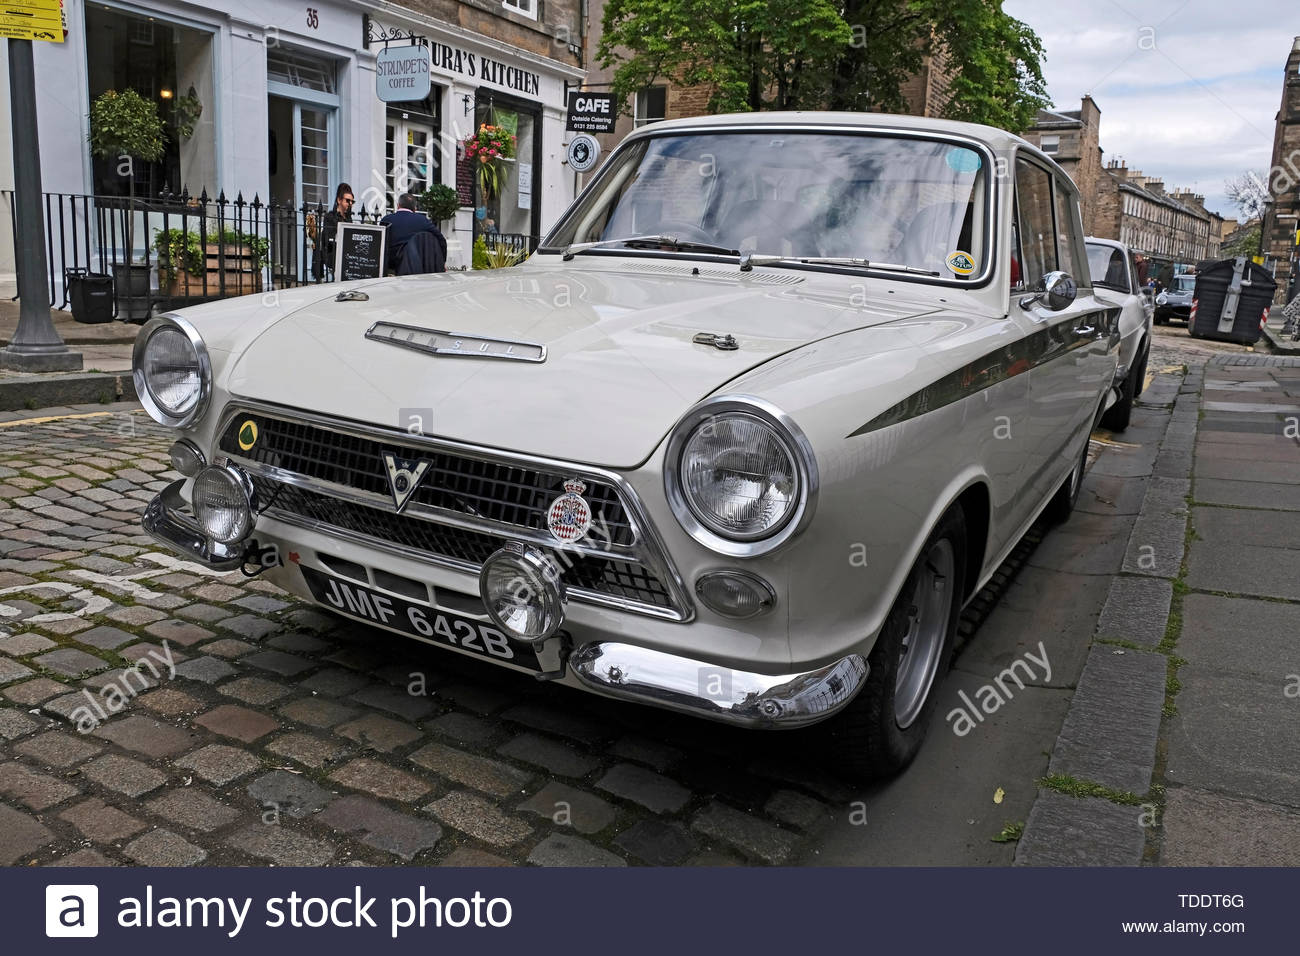 Classic Ford Consul Cortina from 1964 on display at the West End Classic Vehicle event in Edinburgh, Scotland Stock Photo